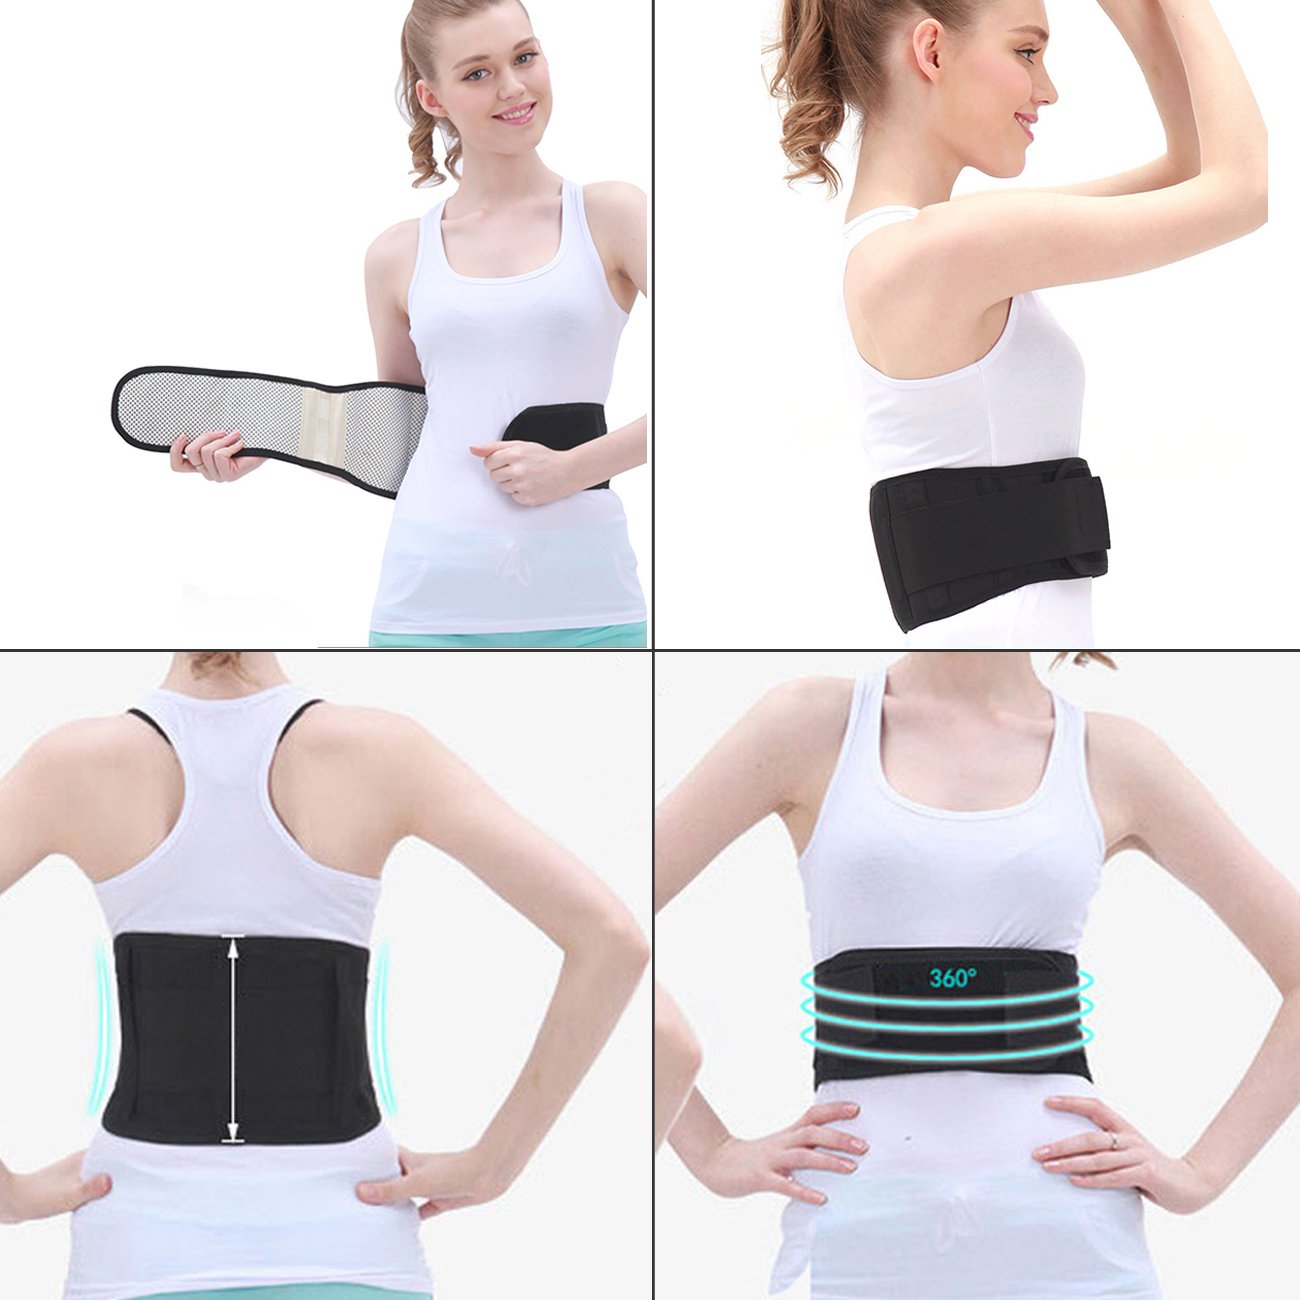 e00177f7f4d Amazon.com  Tcare Adjustable Tourmaline Self heating Magnetic Therapy Waist  Support Belt Lumbar Back Waist Brace Double Band Health Care  Health    Personal ...